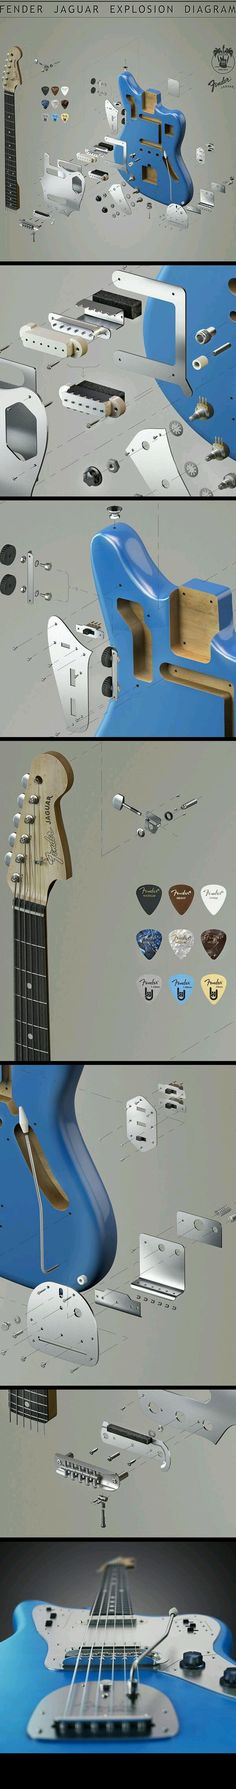 Fender Jaguar - Exploded View.  Awesome!: